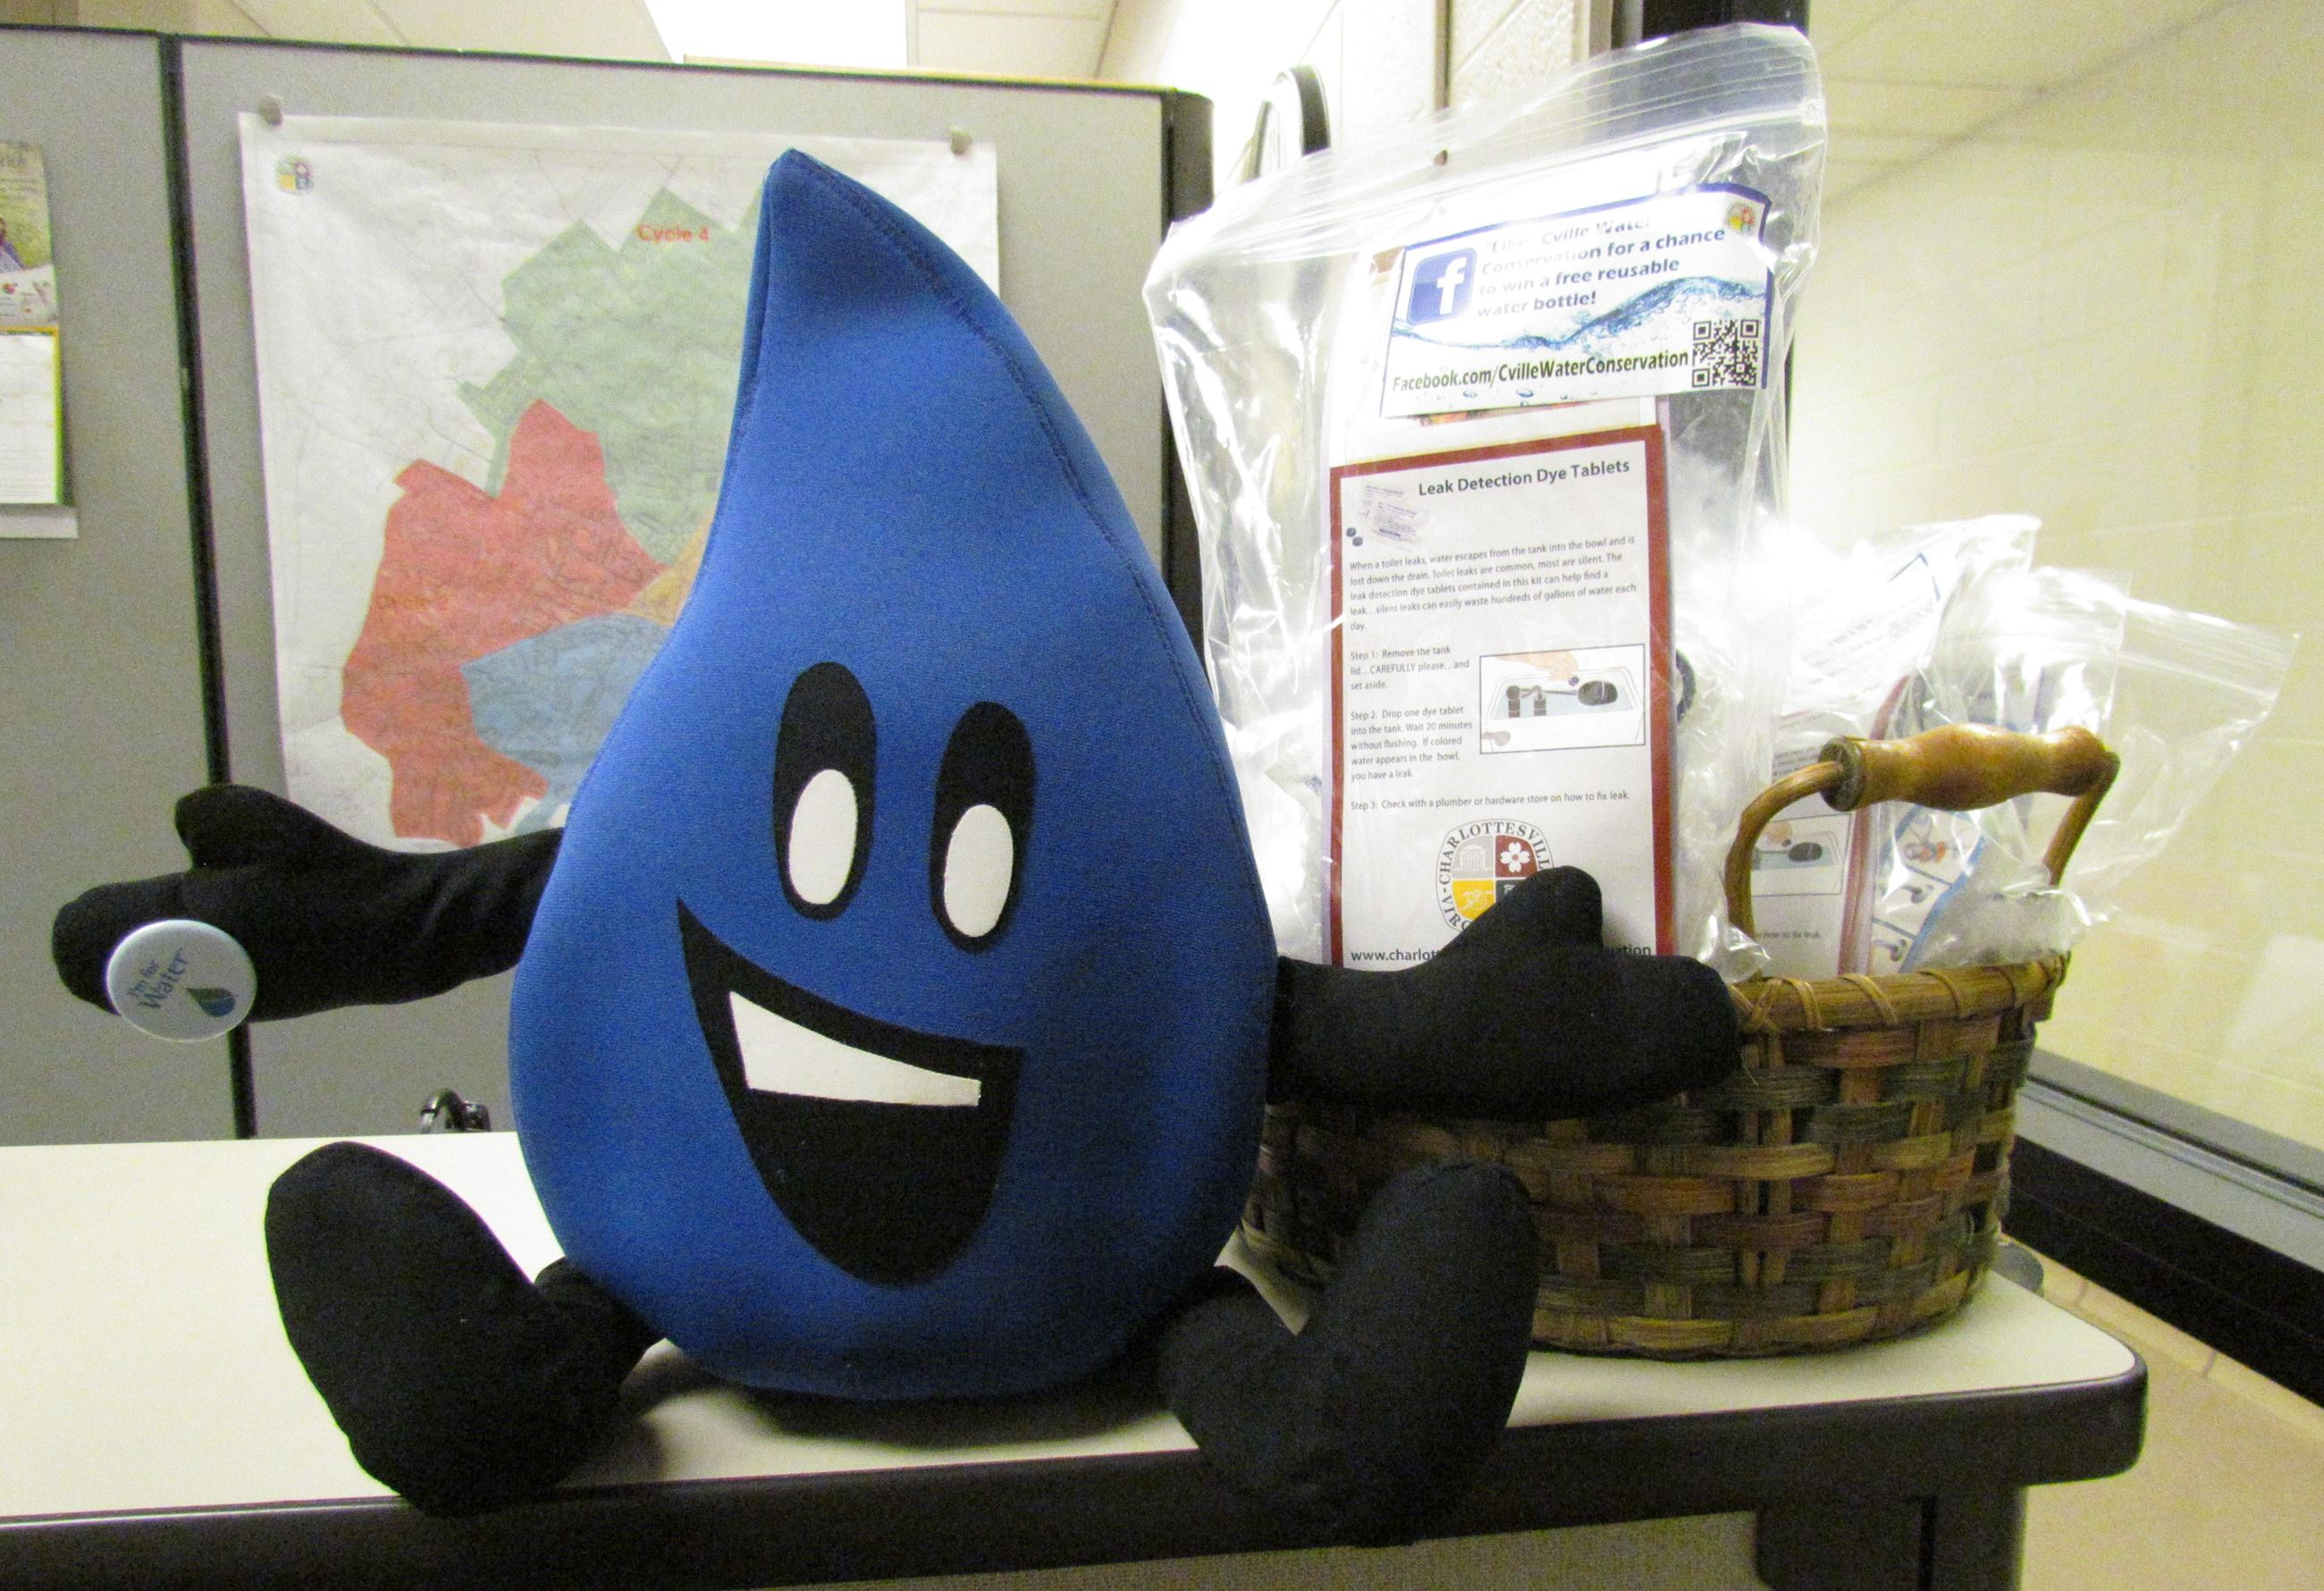 Flo and Water Conservation Kits at Office Utility Billing